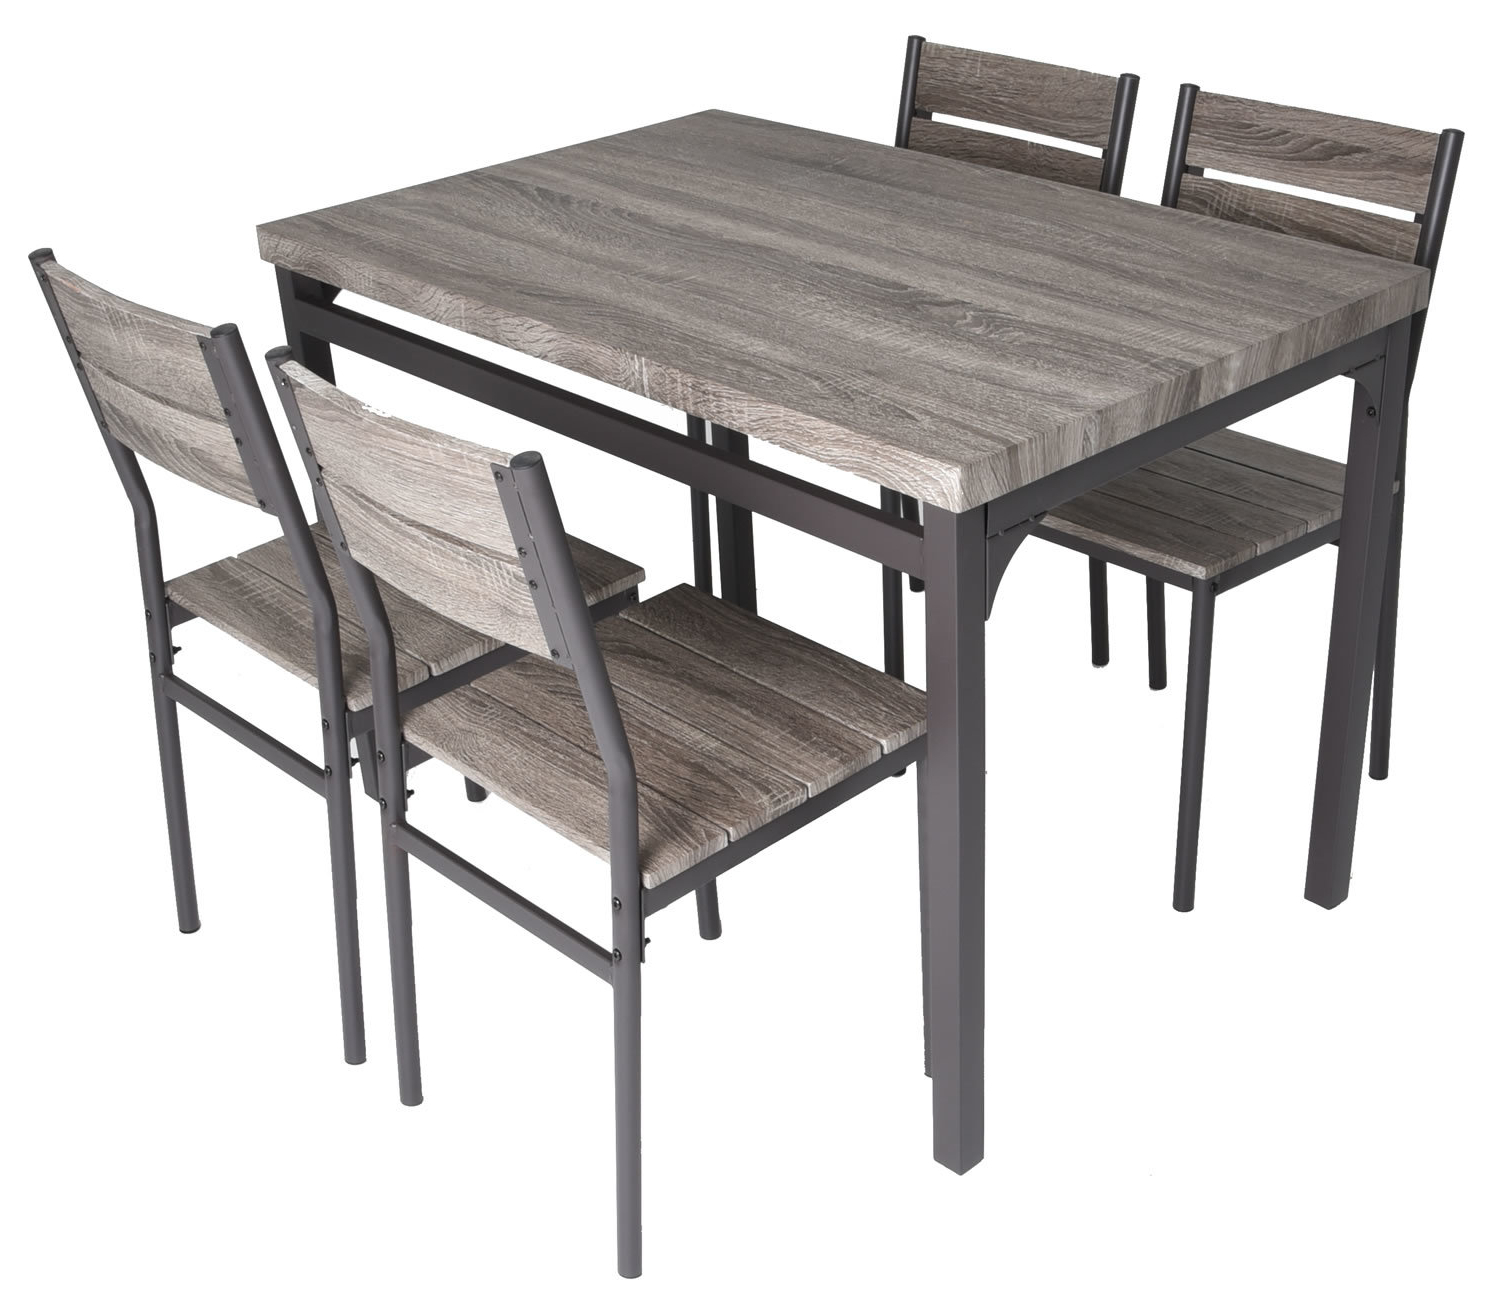 Trendy Emmeline 5 Piece Breakfast Nook Dining Sets Regarding Gracie Oaks Emmeline 5 Piece Breakfast Nook Dining Set & Reviews (View 1 of 25)